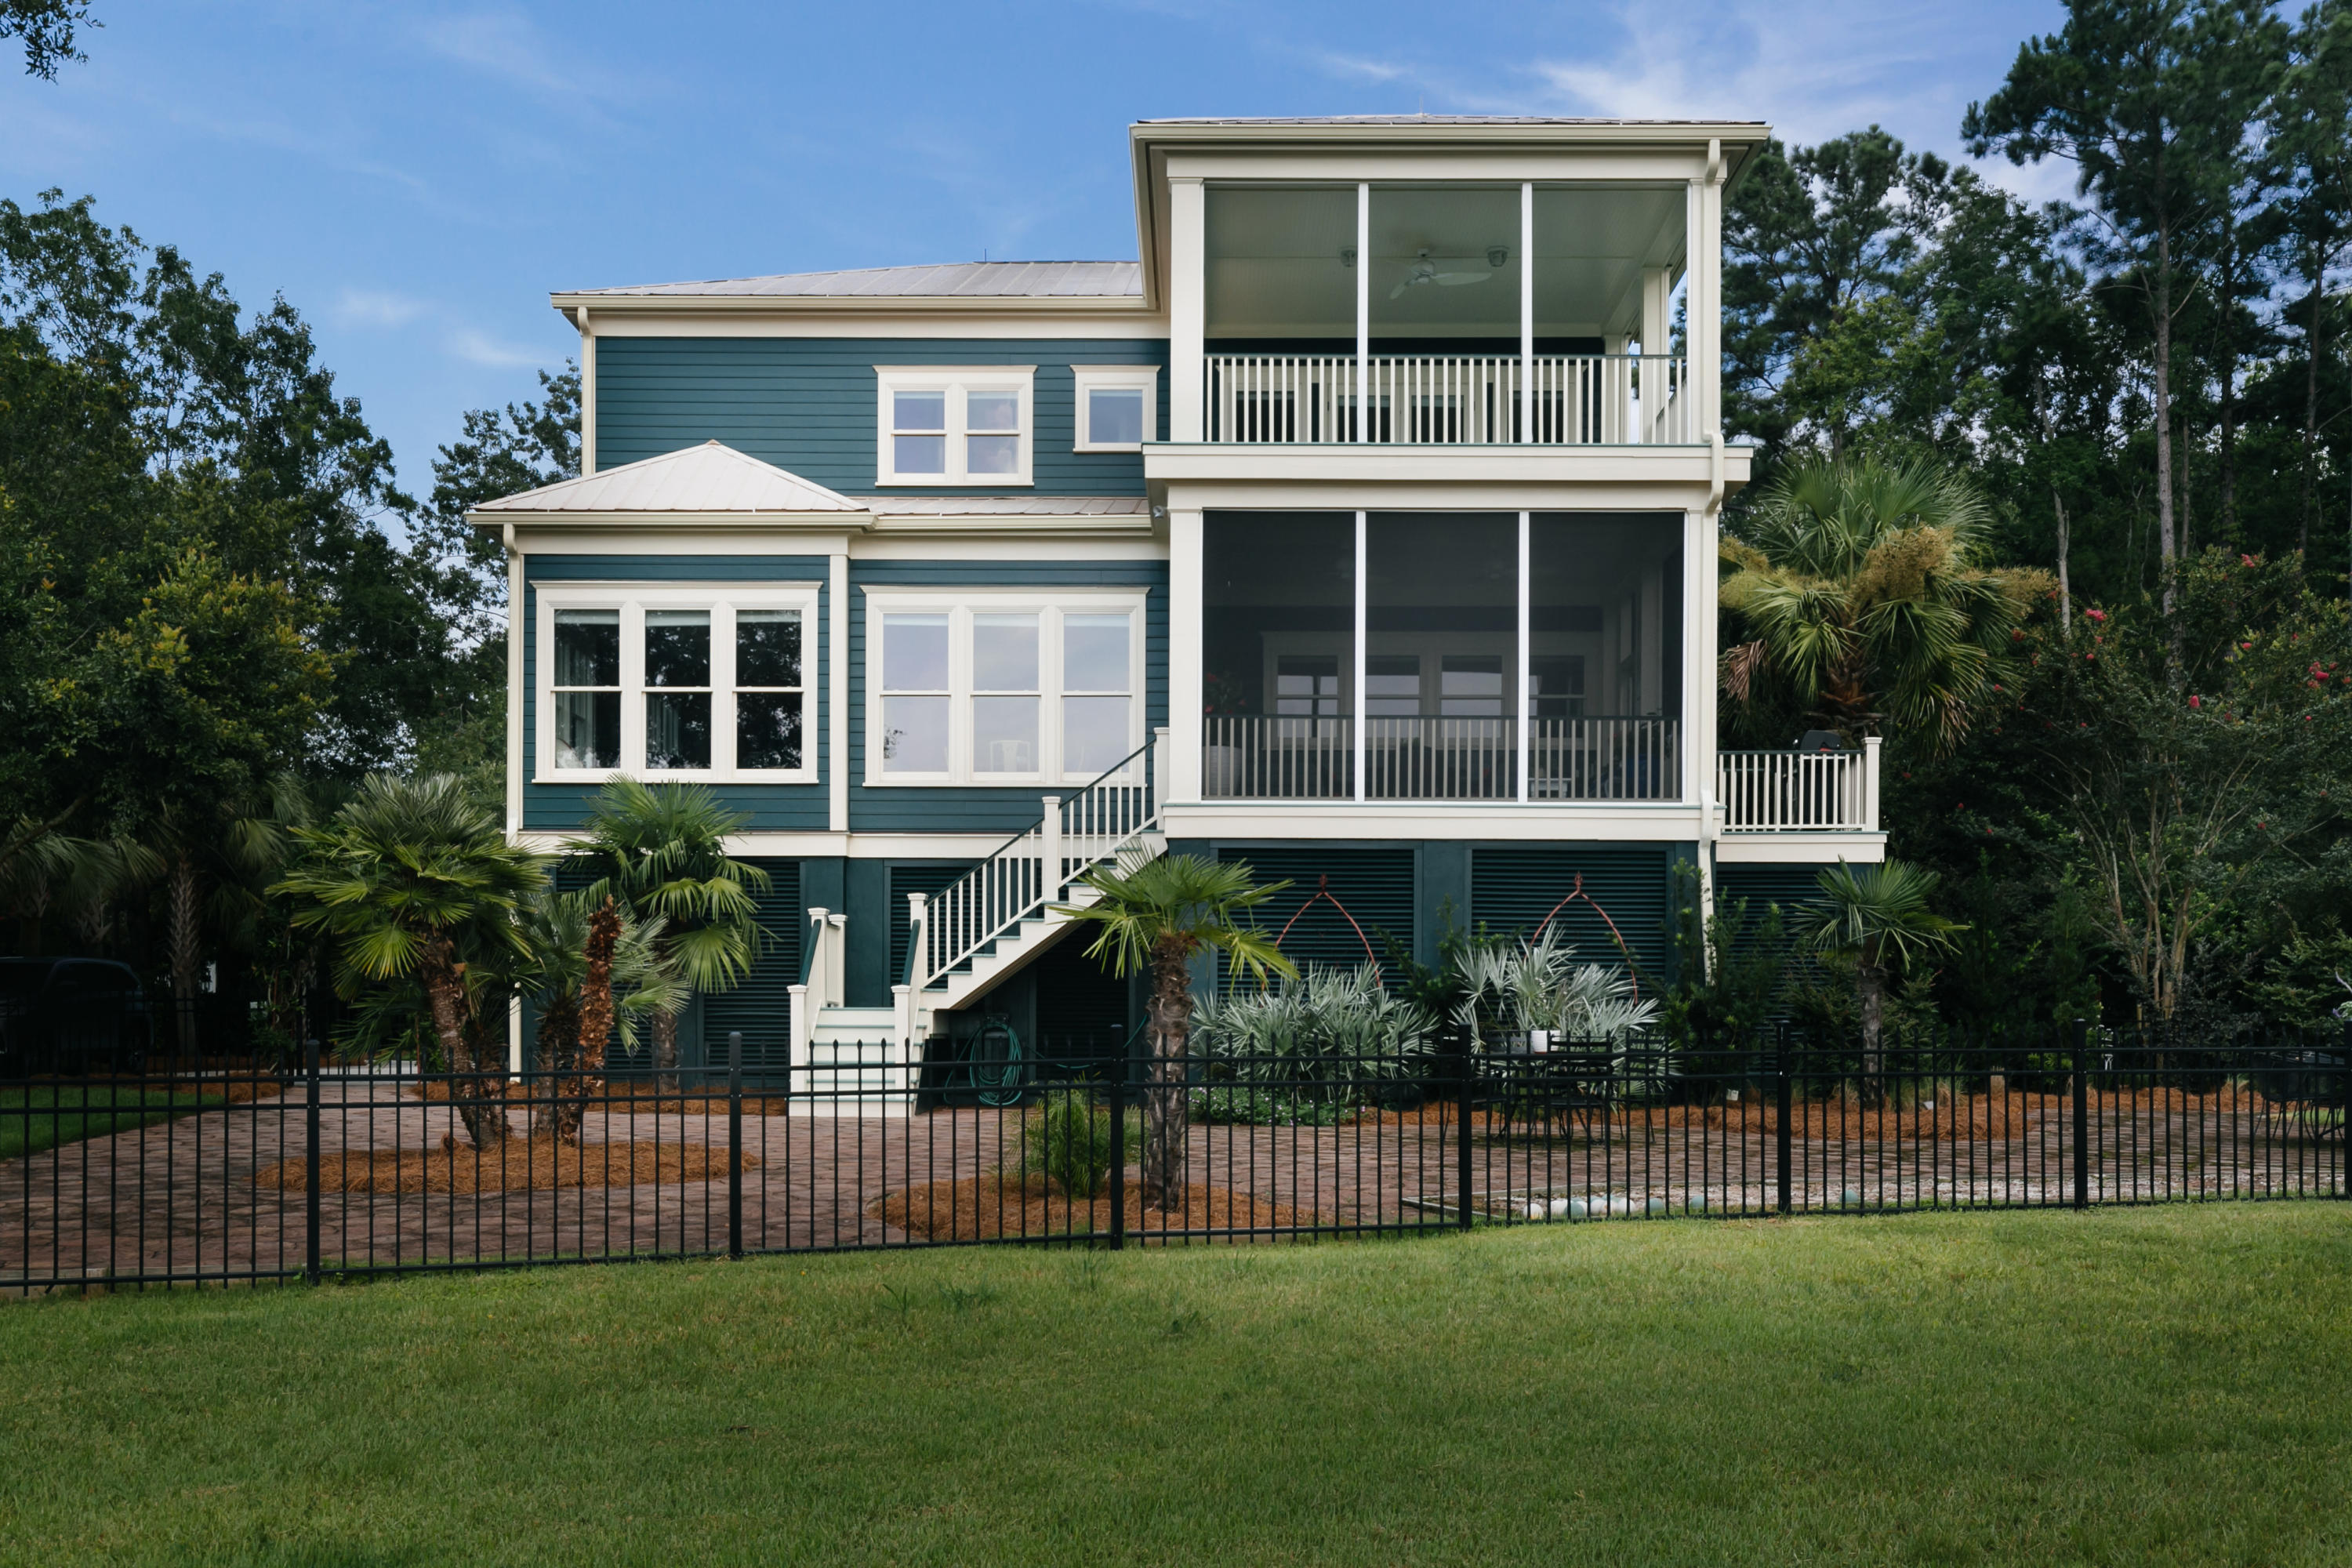 Rivertowne On The Wando Homes For Sale - 2212 Hartfords Bluff, Mount Pleasant, SC - 58